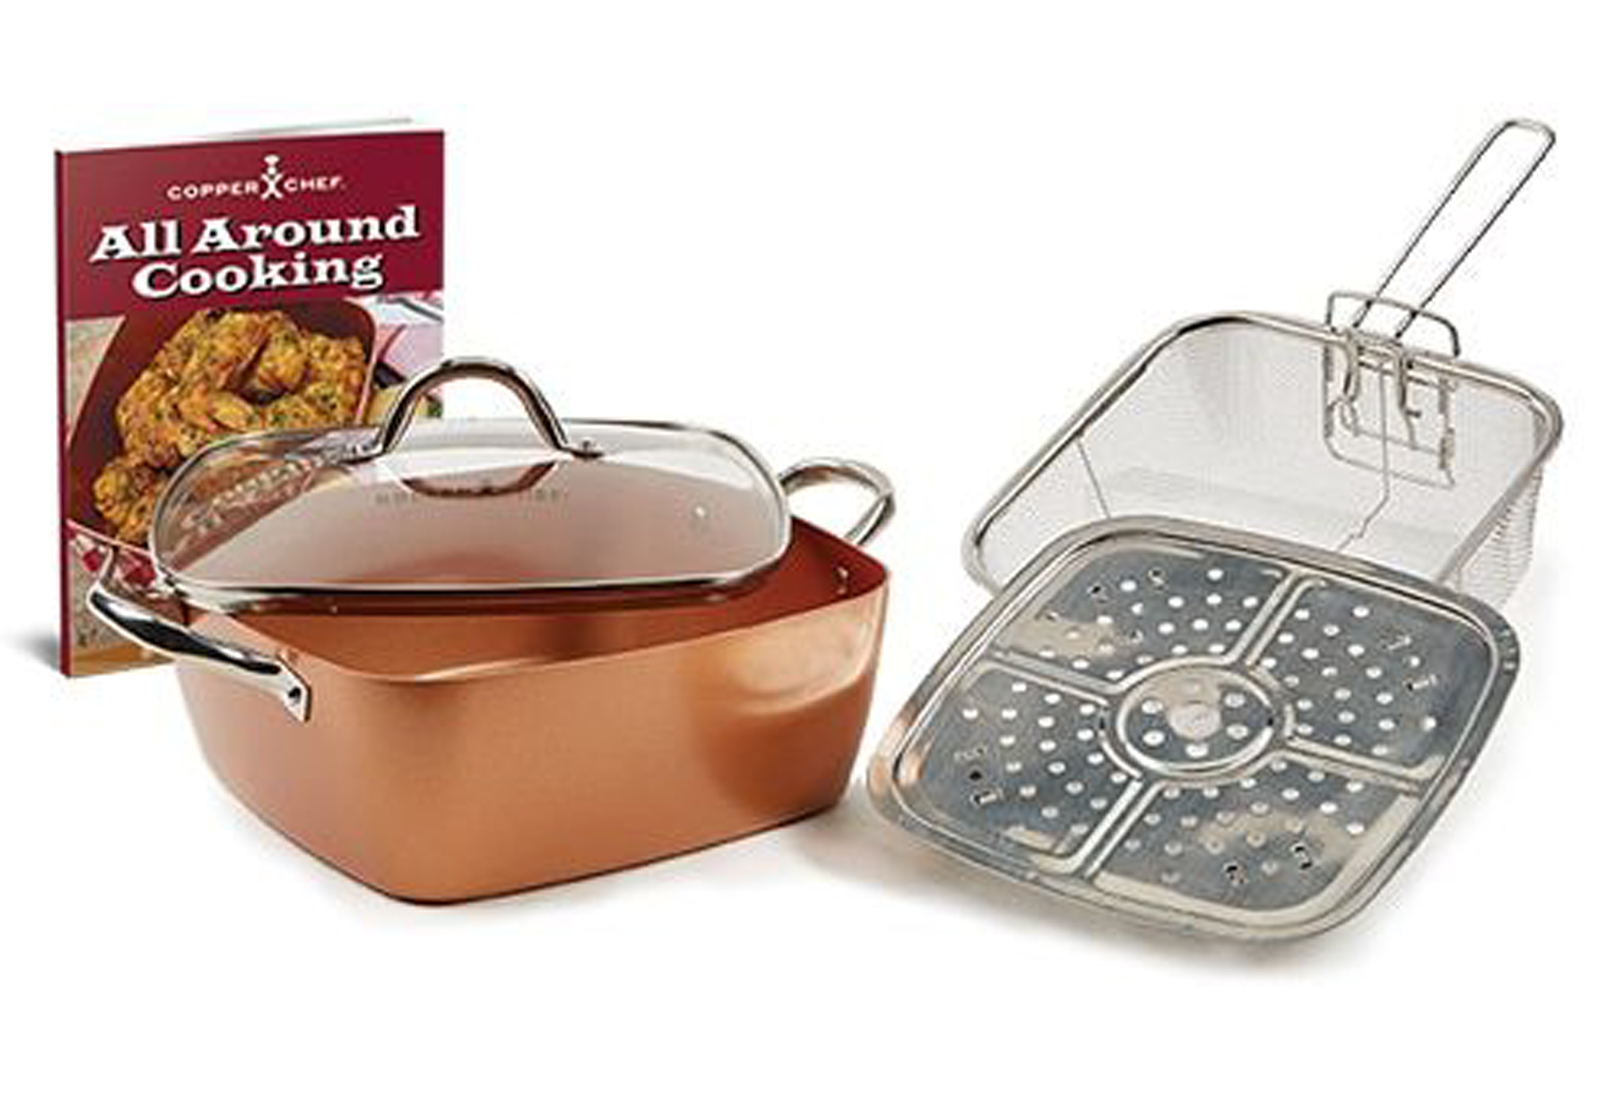 Copper Chef XL 11 In Casserole Pan 5PC Set Product Image